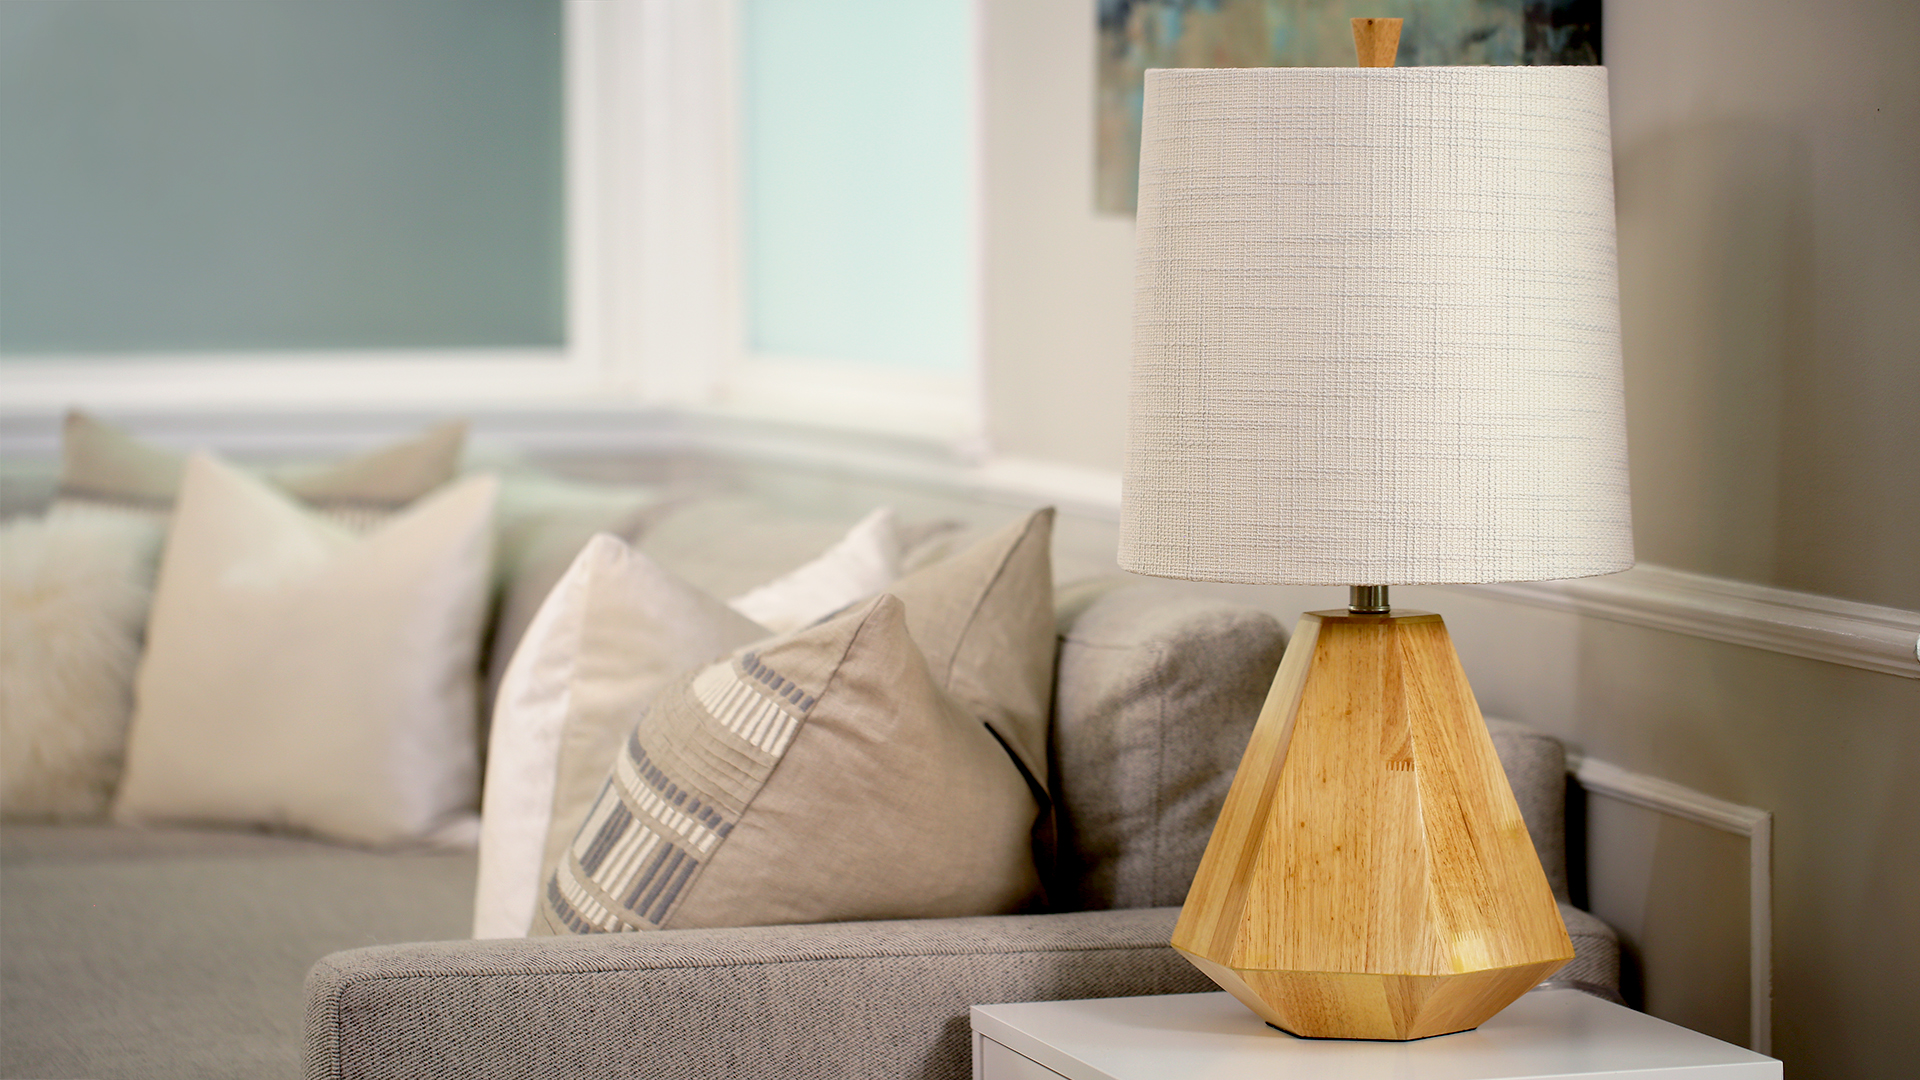 Finding the Right Lamp for Your Space